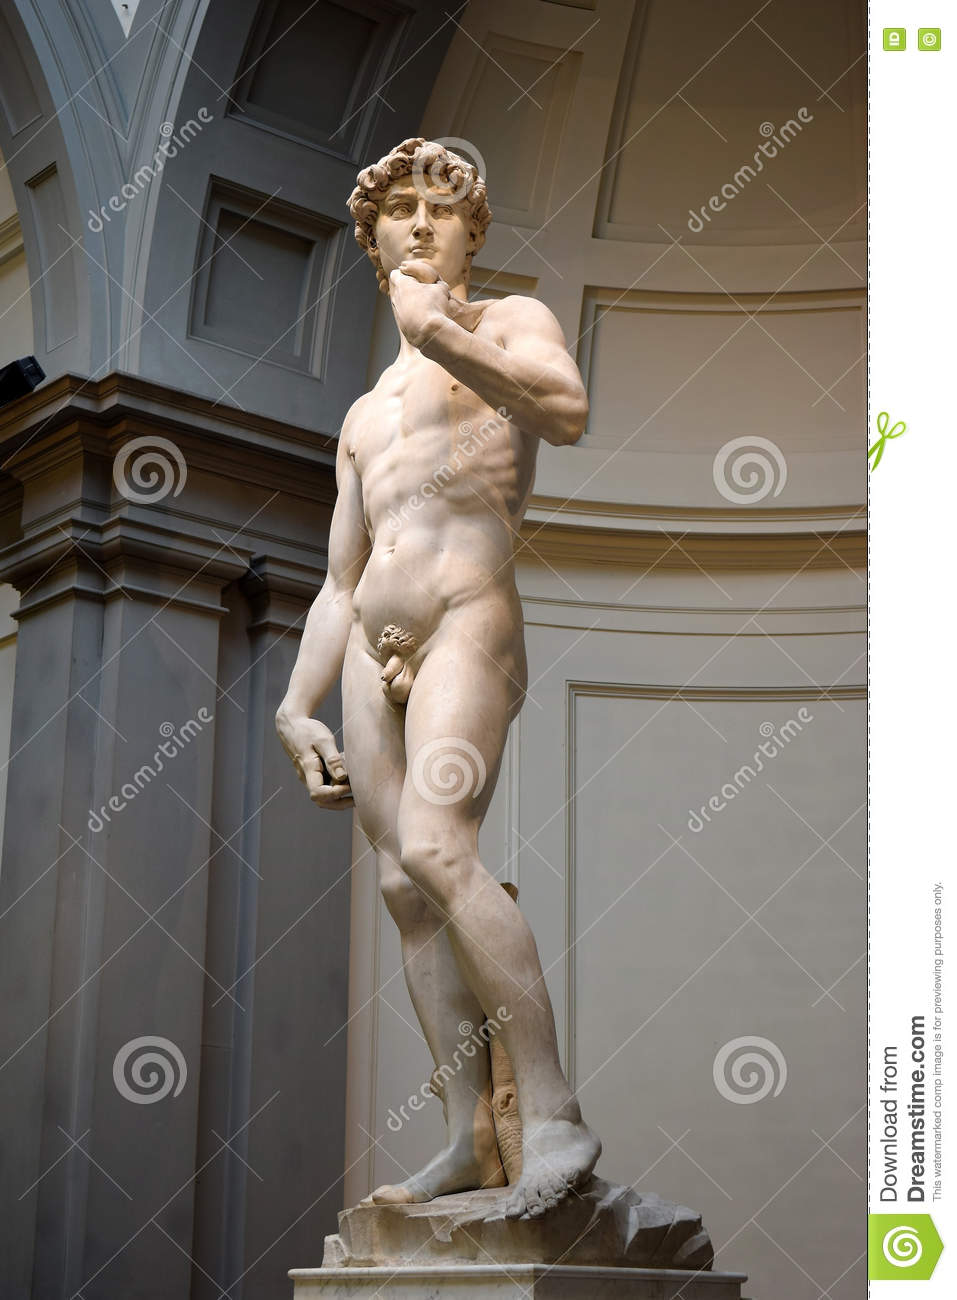 David By Michelangelo In Galleria Dell Accademia Florence, Italy.